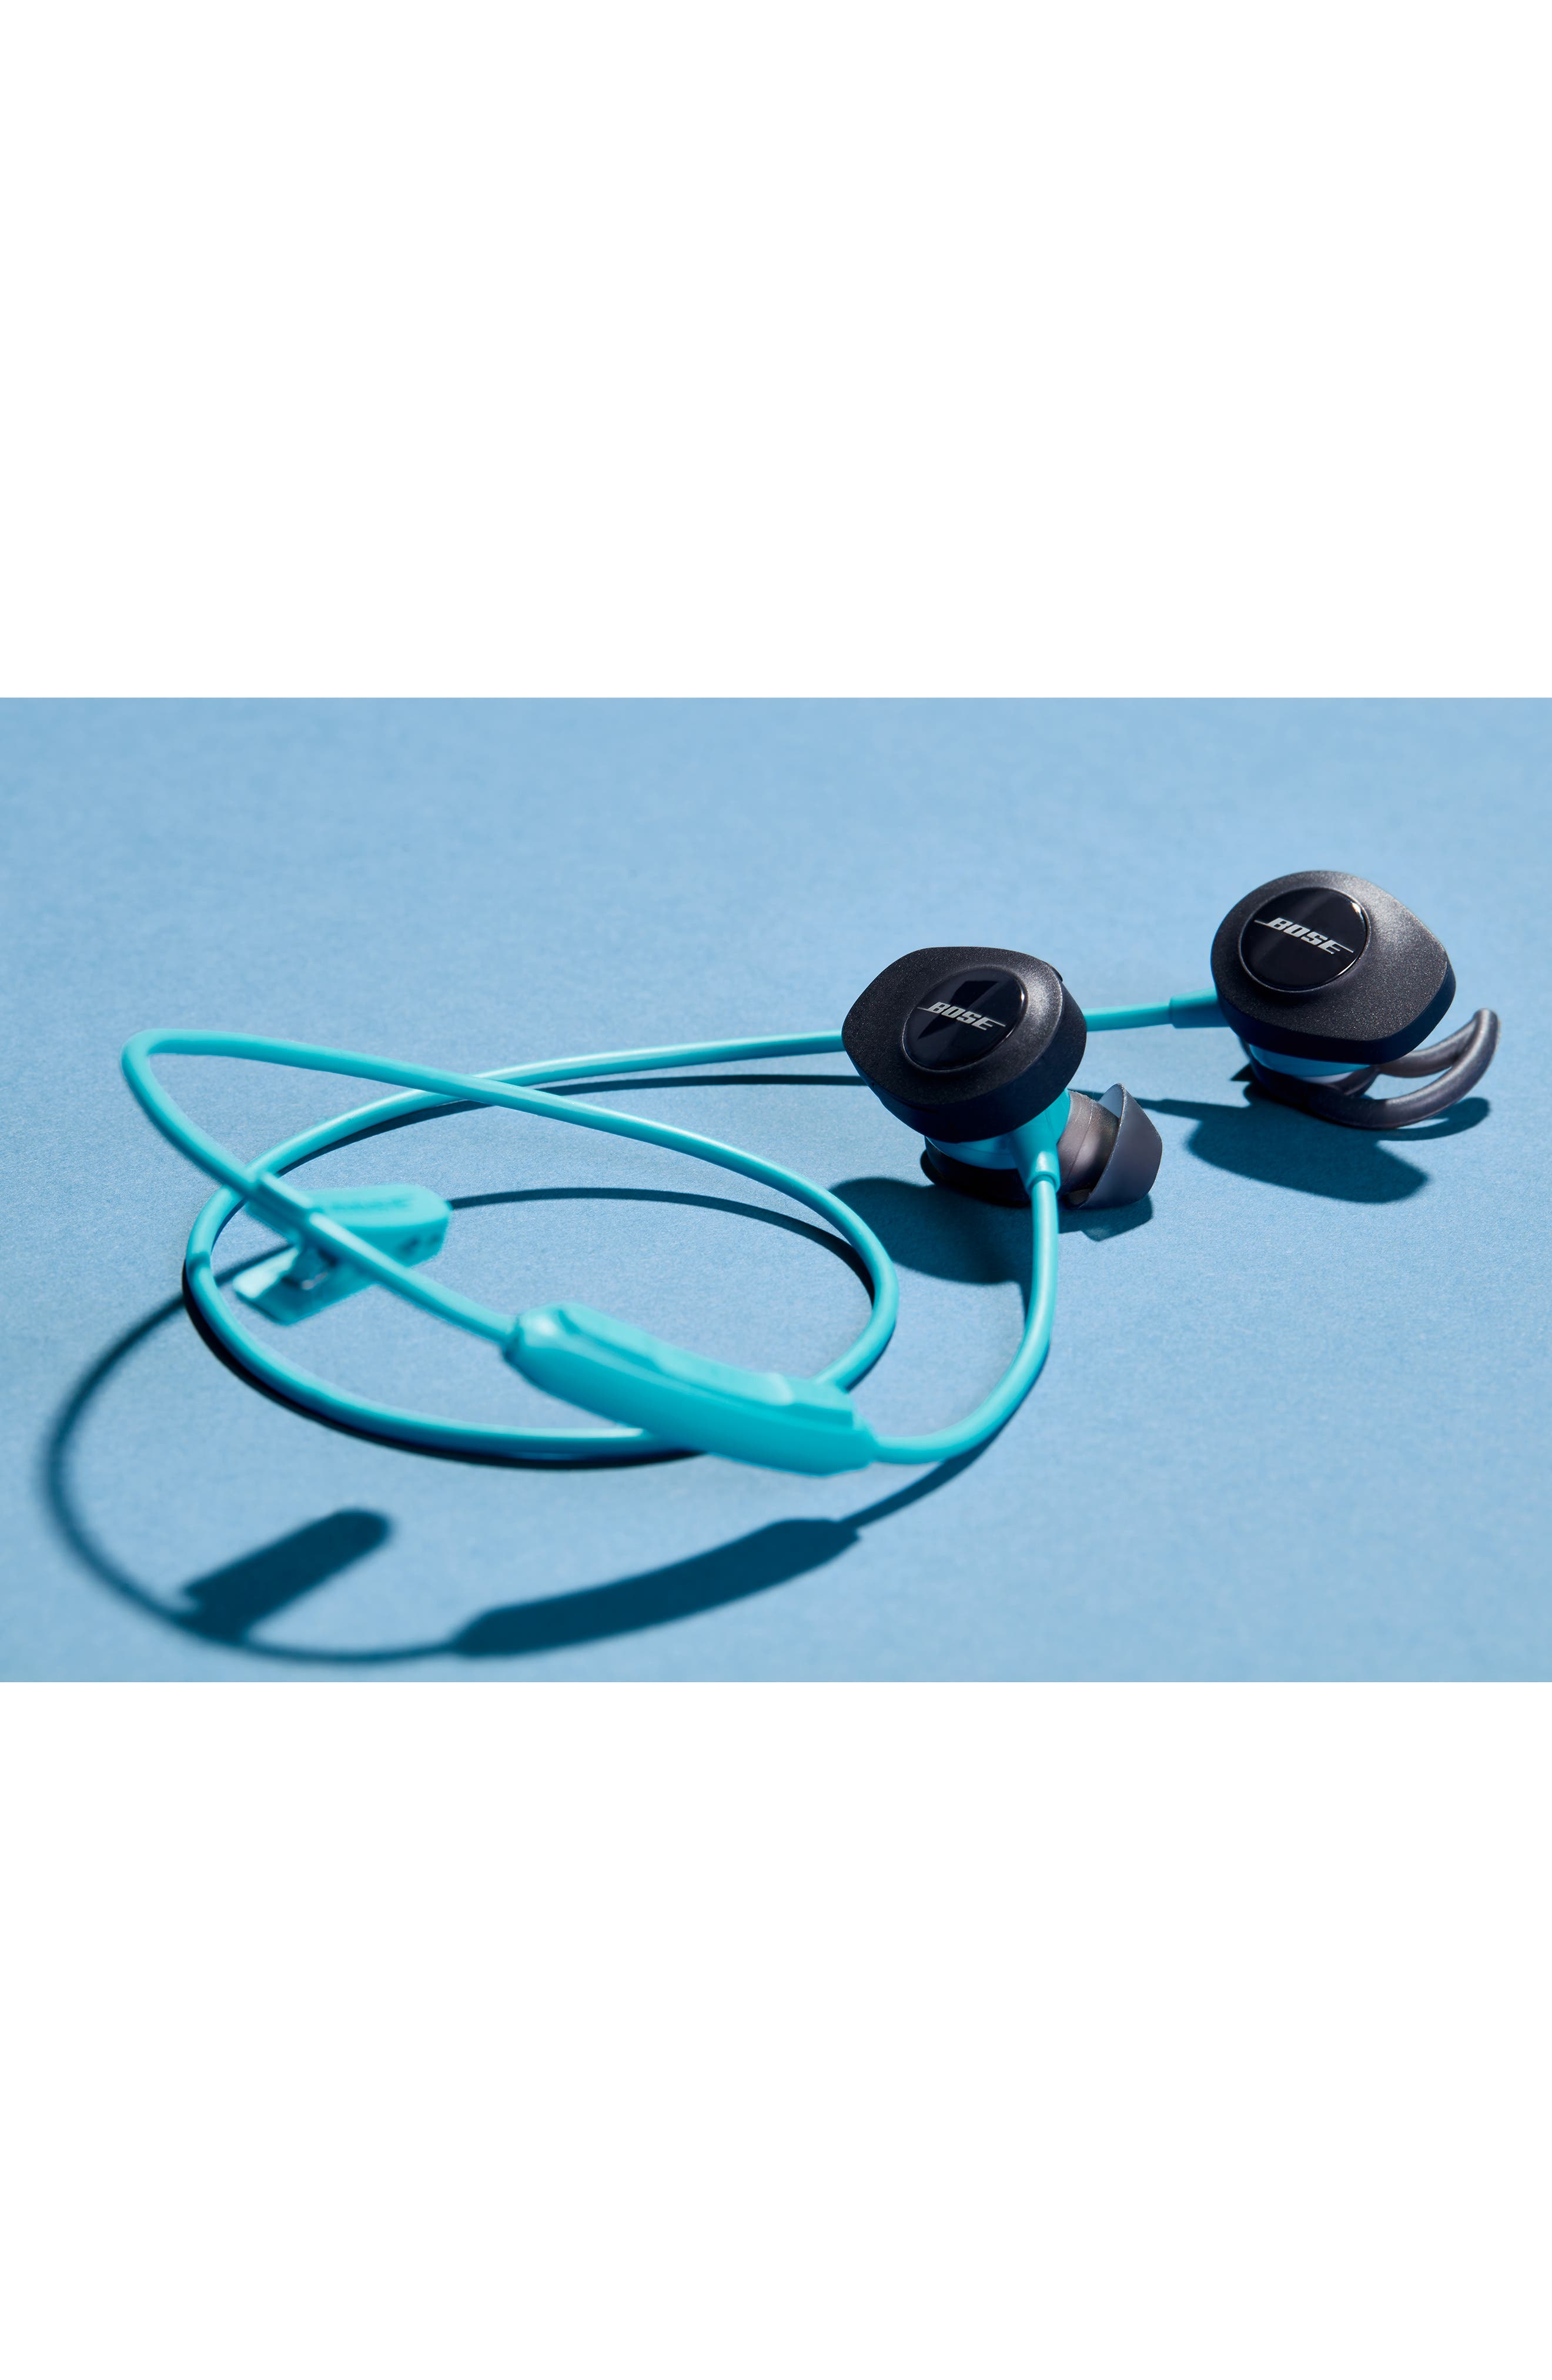 SoundSport<sup>®</sup> Wireless Headphones,                             Alternate thumbnail 9, color,                             BLACK